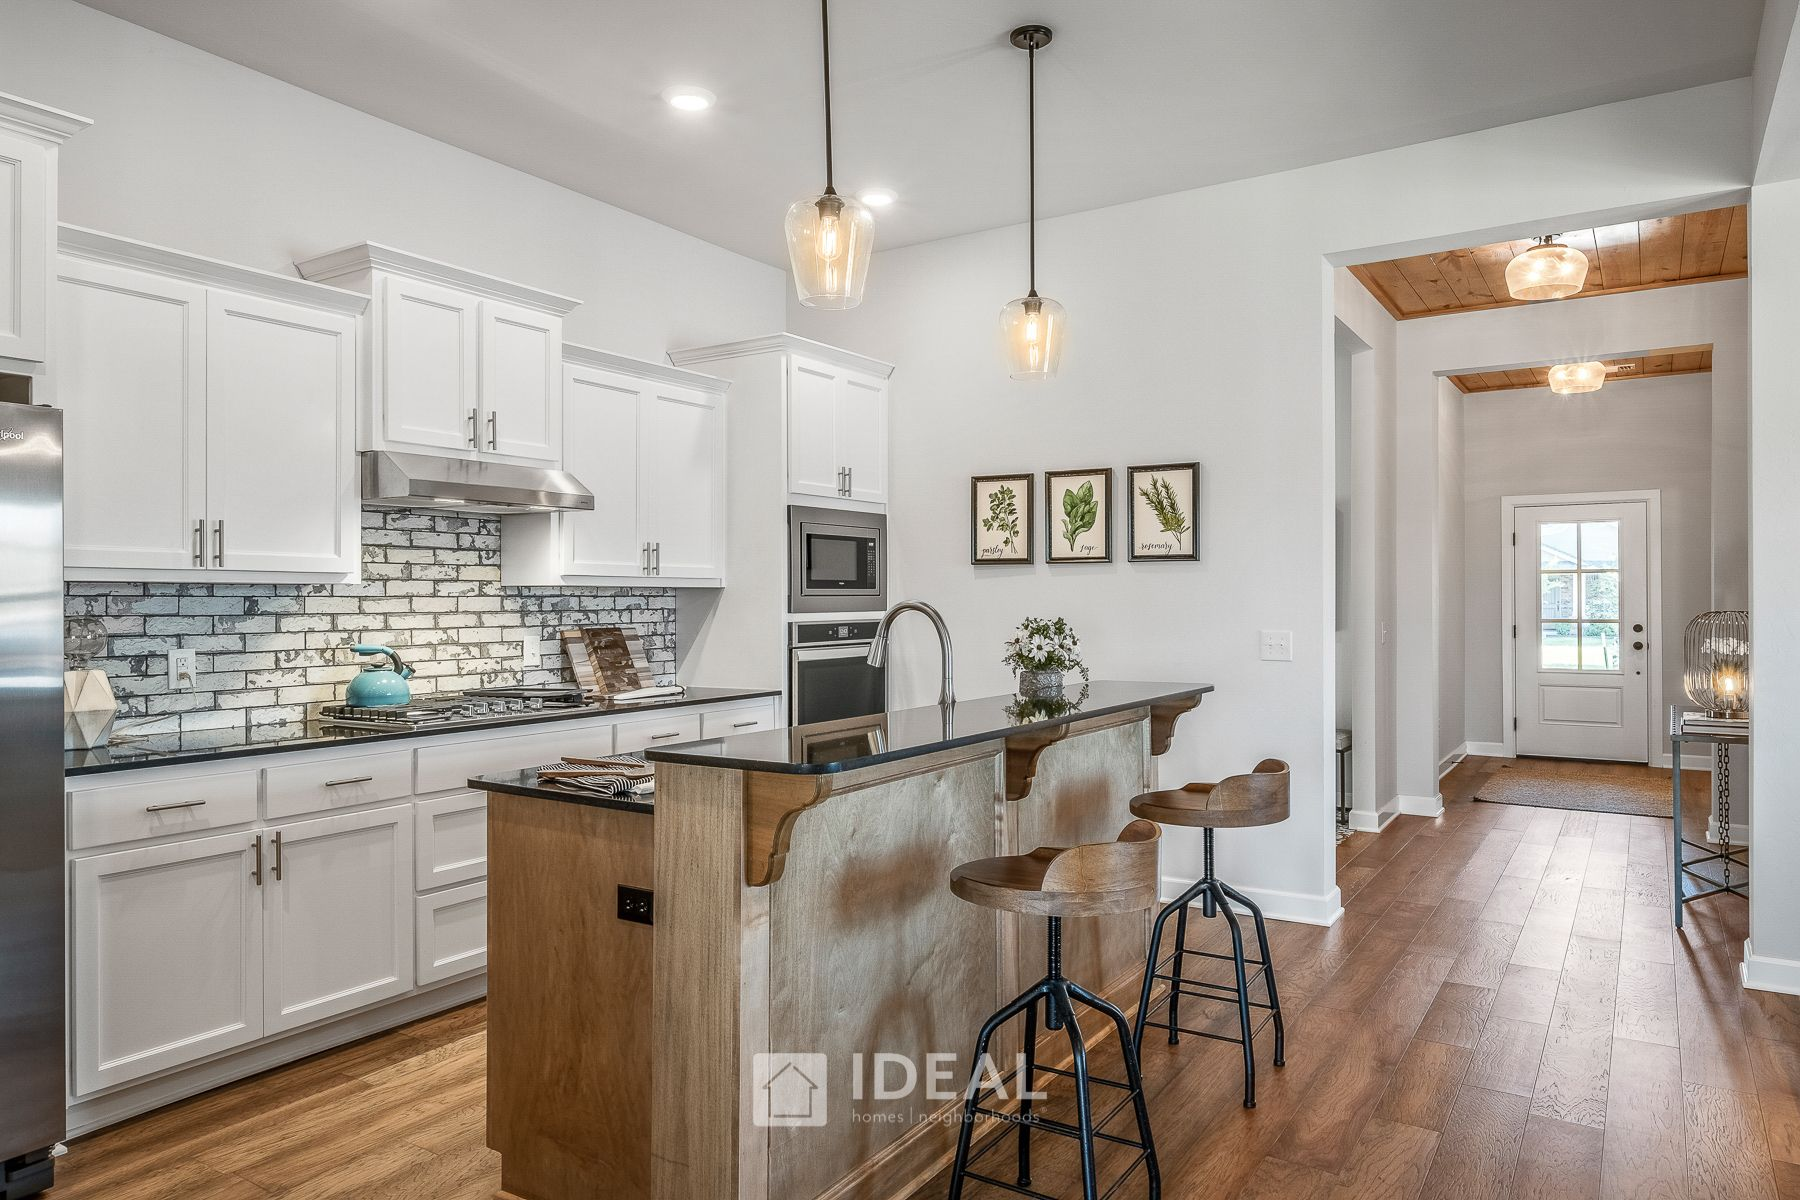 Kitchen featured in the Murphy By Ideal Homes in Oklahoma City, OK